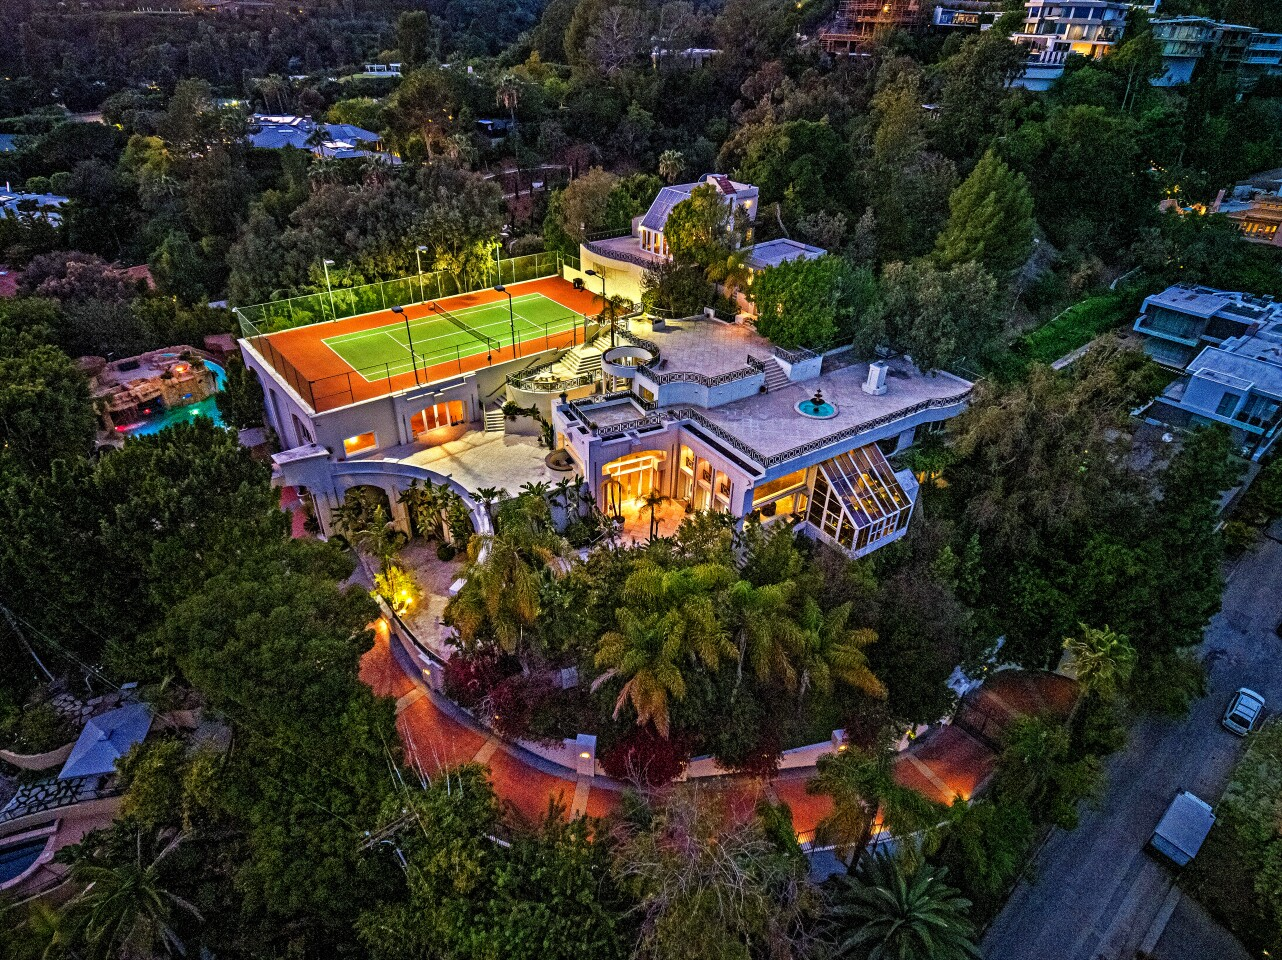 Built by contractor and noted playboy Hal B. Hayes in the 1950s, the 18,000-square-foot mansion was built to withstand a nuclear blast and features a sealed underground cave accessed by an underwater tunnel. In the 2000s, the home was owned by former NBA player Carlos Boozer, who leased the property to the late pop star Prince. It's now for sale at about $30 million. Boozer later sued Prince for damages after the pop star renovated the home and added a heart-shaped bed in the master bedroom as well as a hair salon in a spare bedroom. Italian carpets were replaced with shades of purple and black. (The Oppenheim Group)